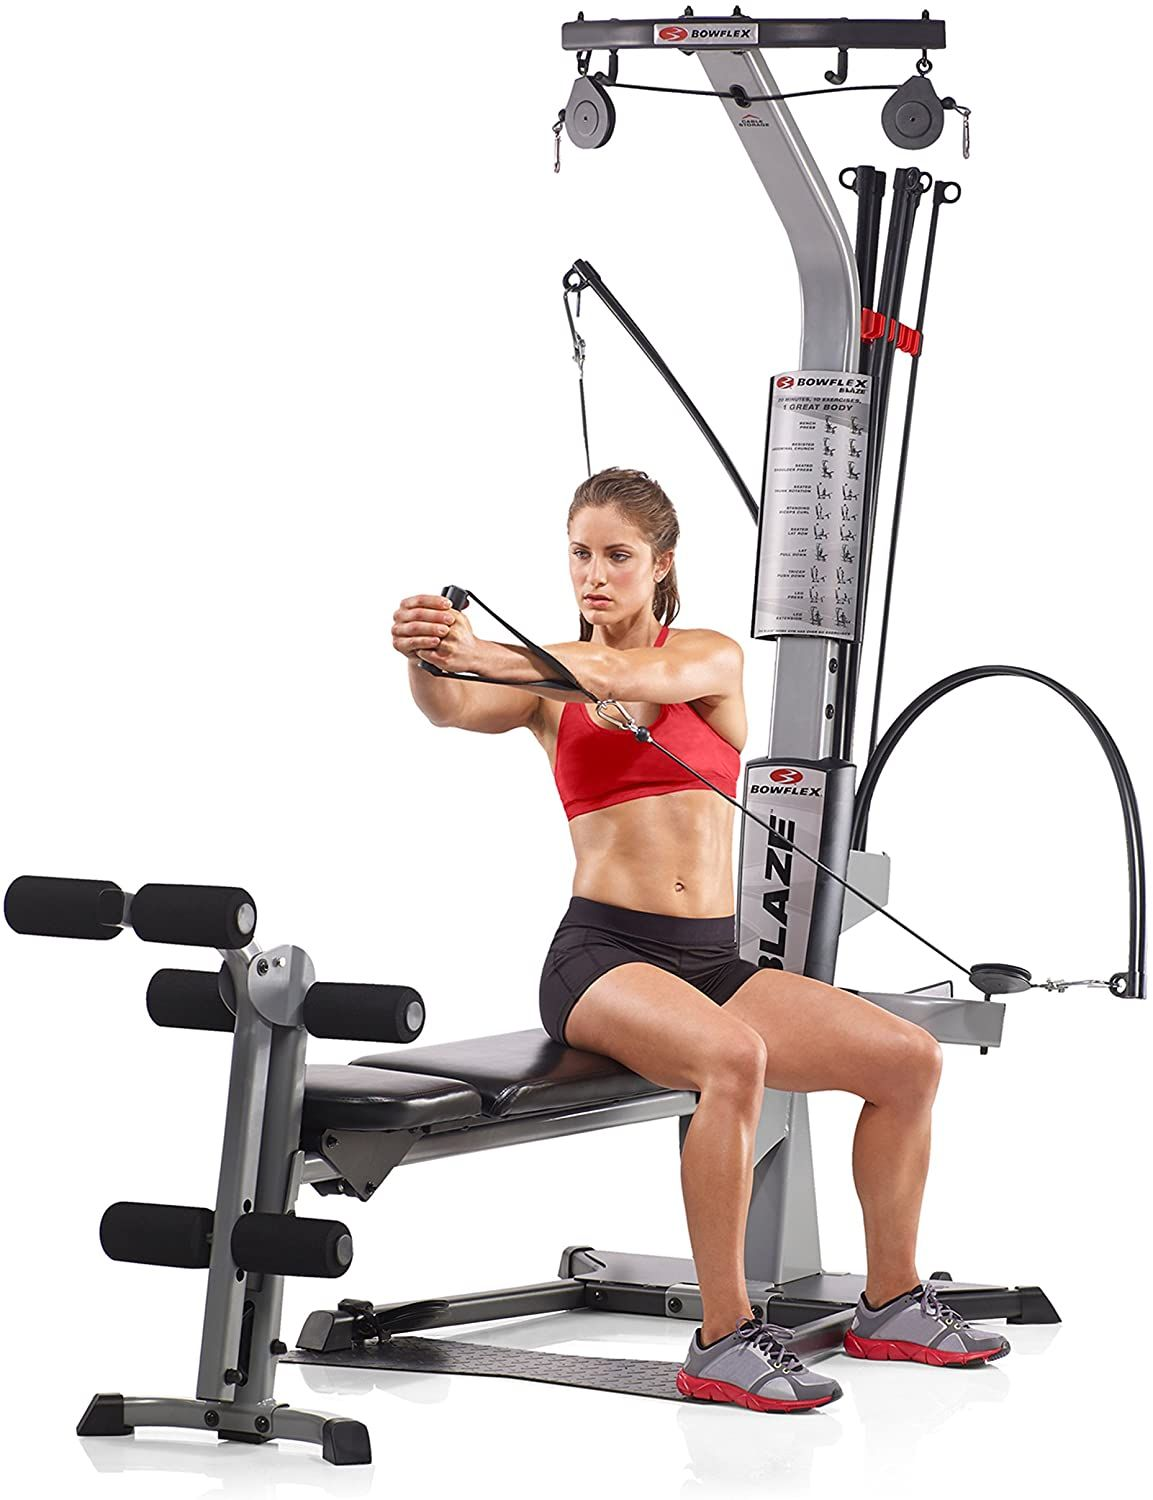 10 Best Gym Equipments You Need In 2020 No Equipment Workout Home Workout Equipment Bowflex Workout Routine